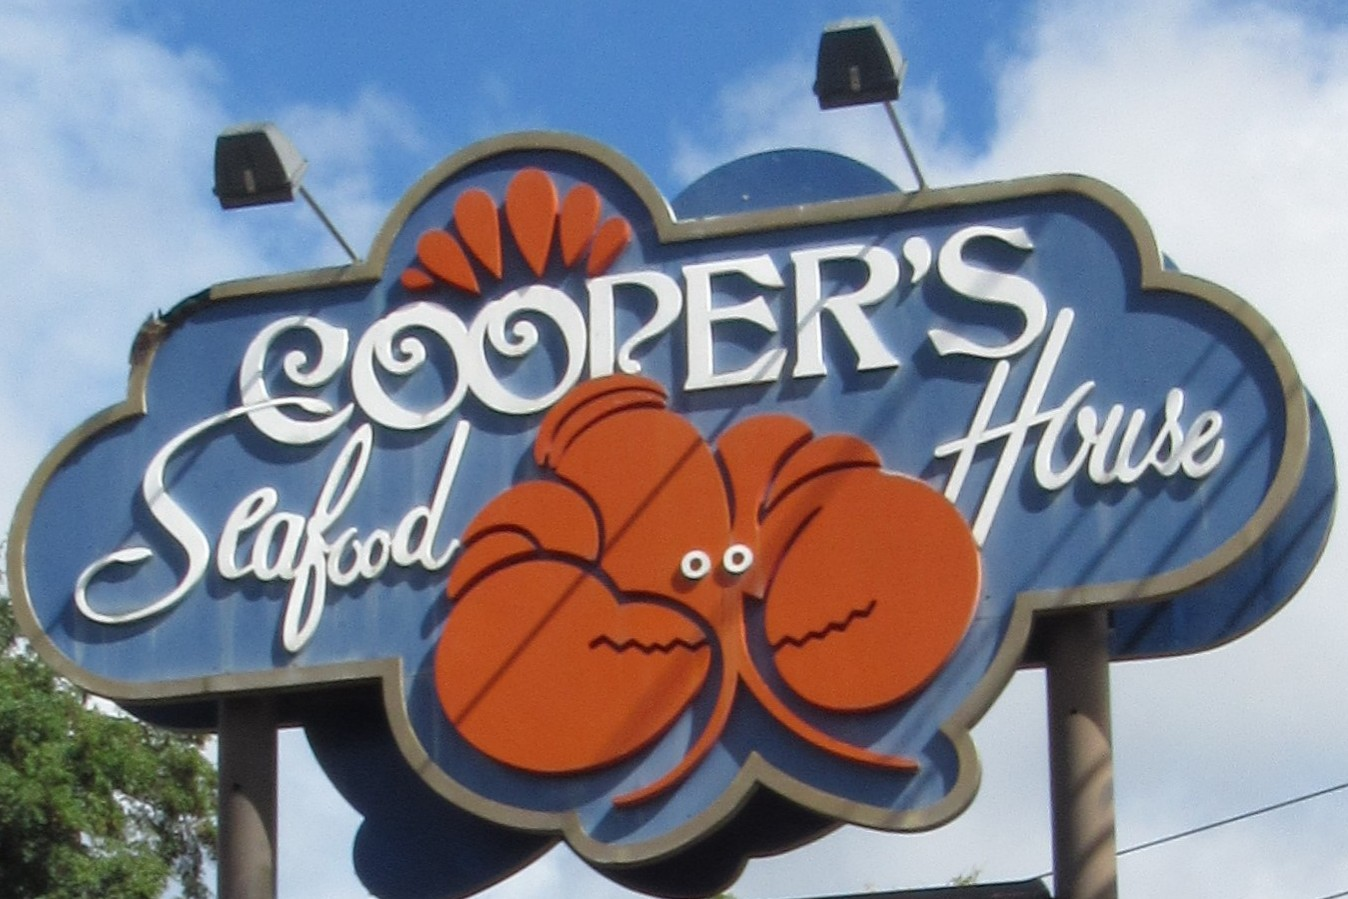 Cooper's Seafood house sign